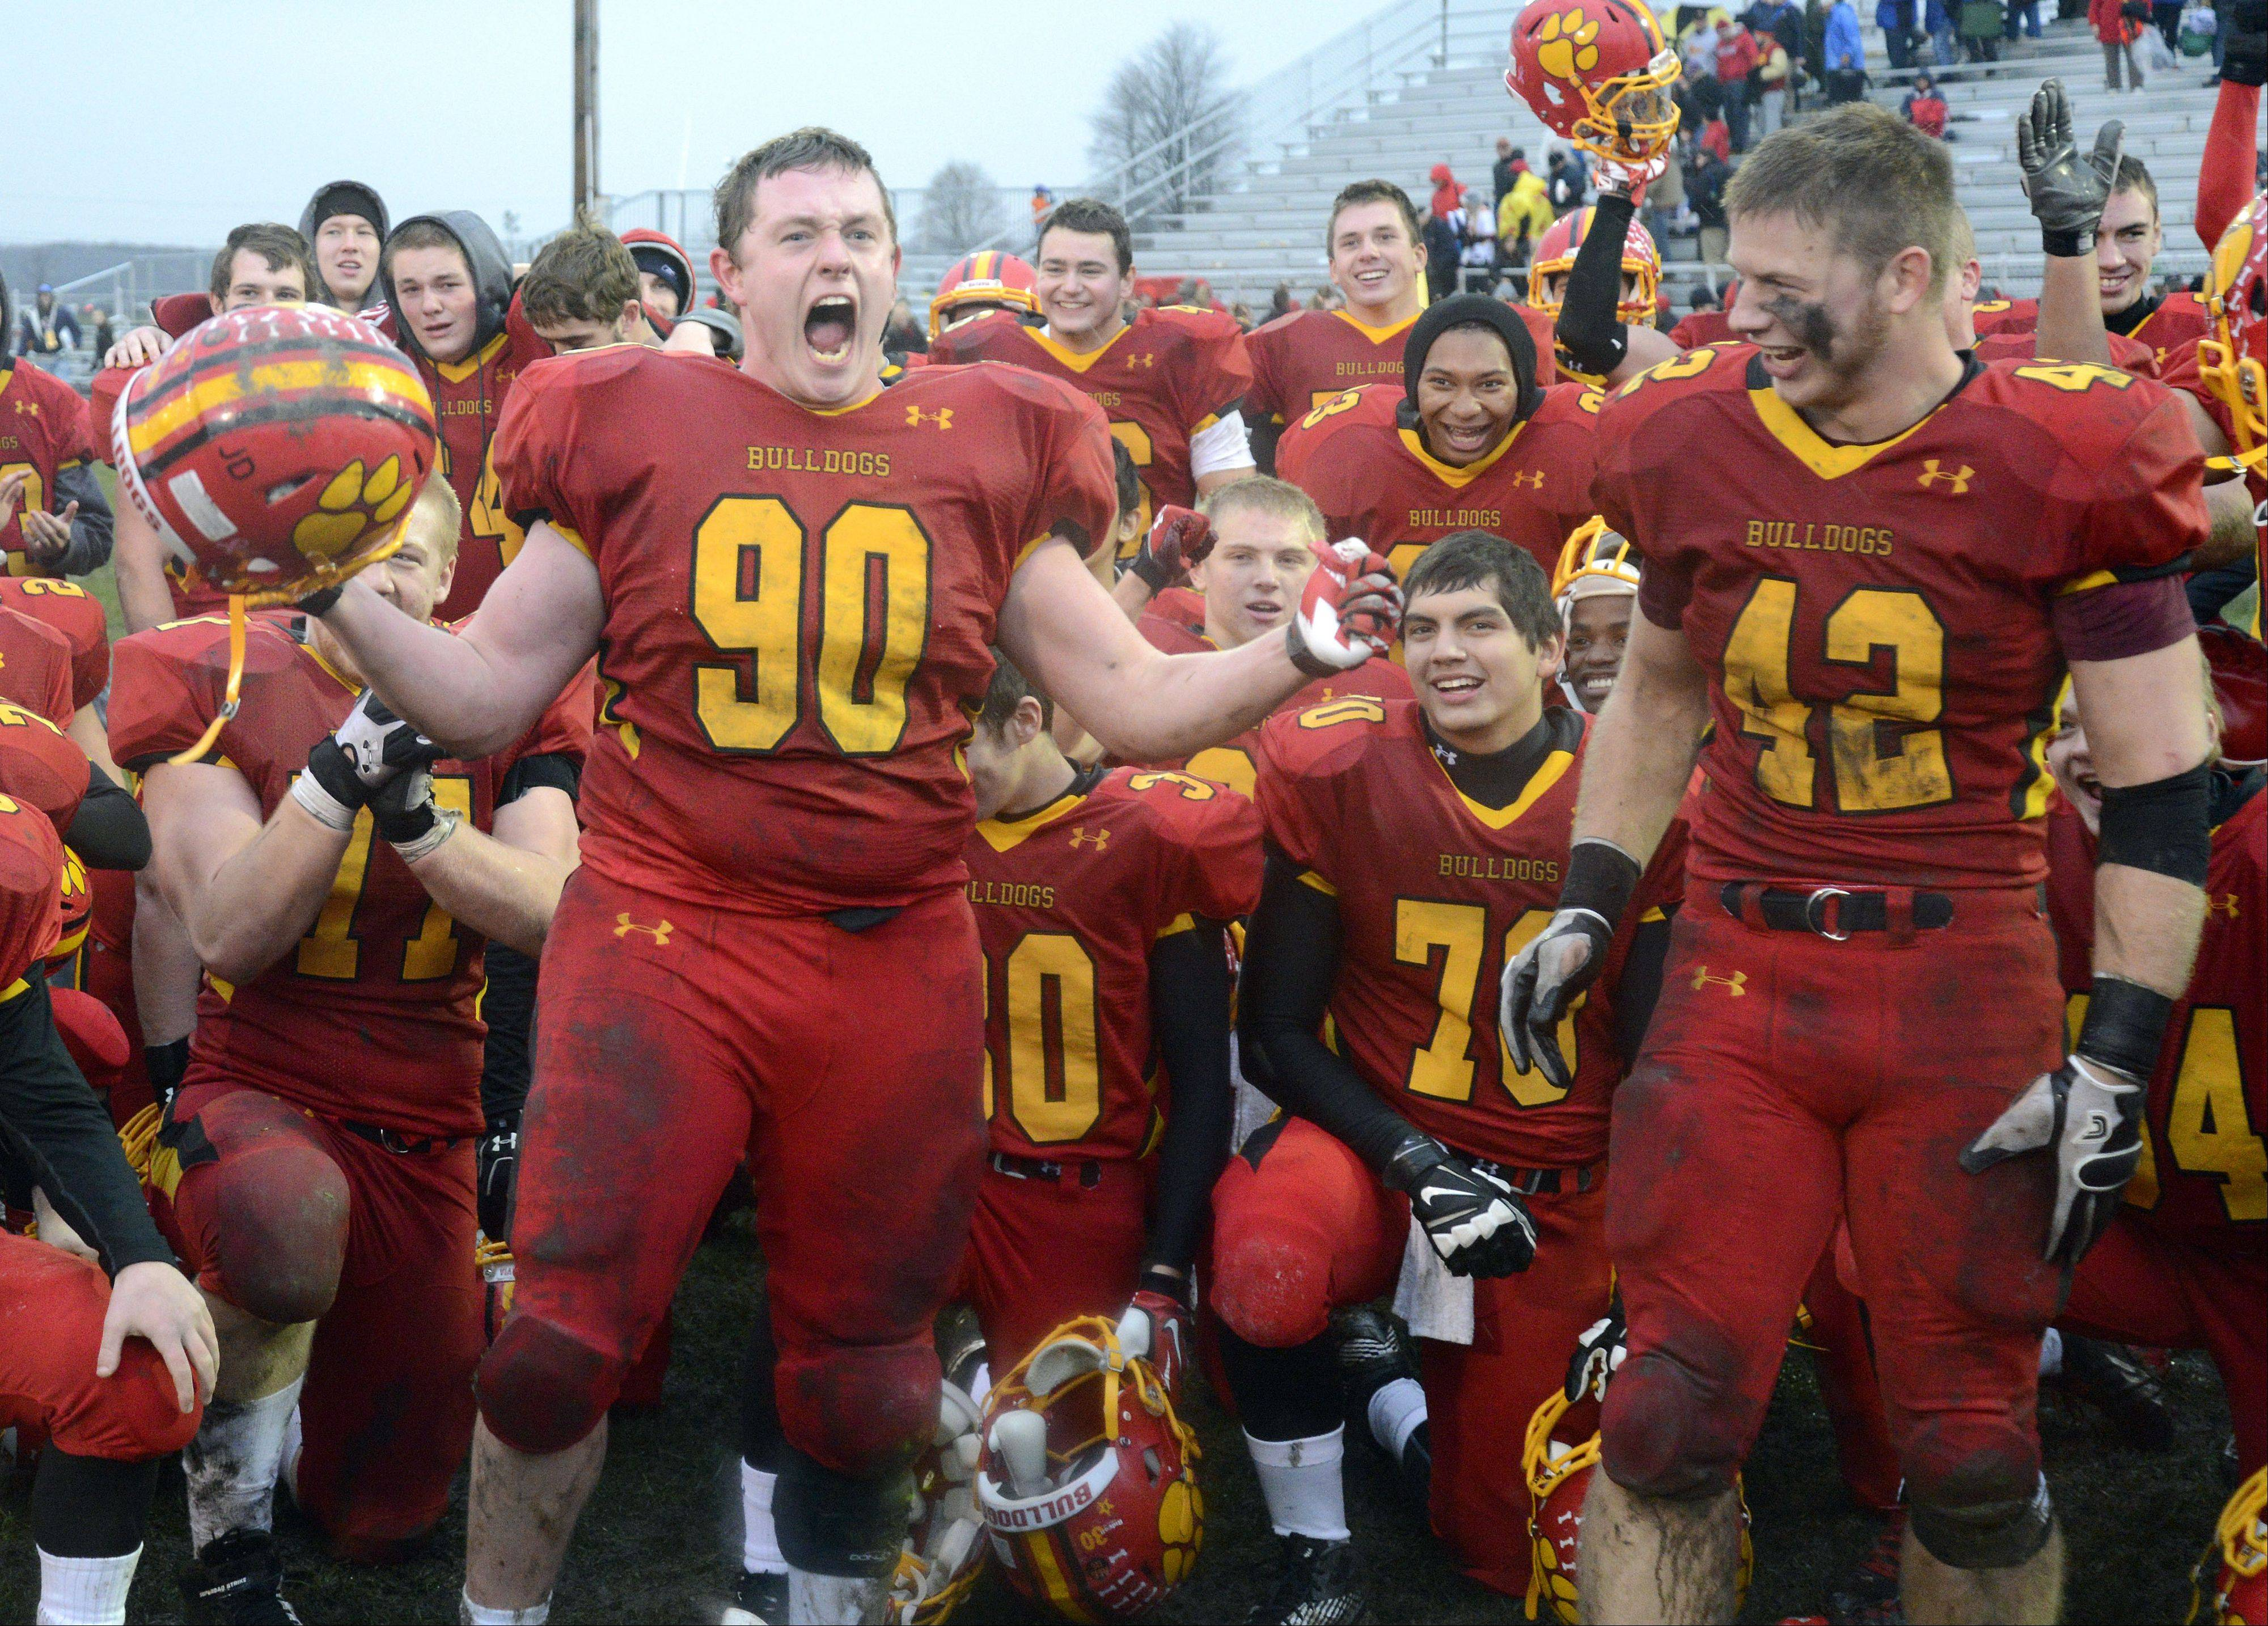 Batavia's Ryan Minniti screams in victory in the post game huddle after beating Lake Forest in the Class 6A quarterfinal on Saturday, November 16. Teammate Kevin Green on right. (42)